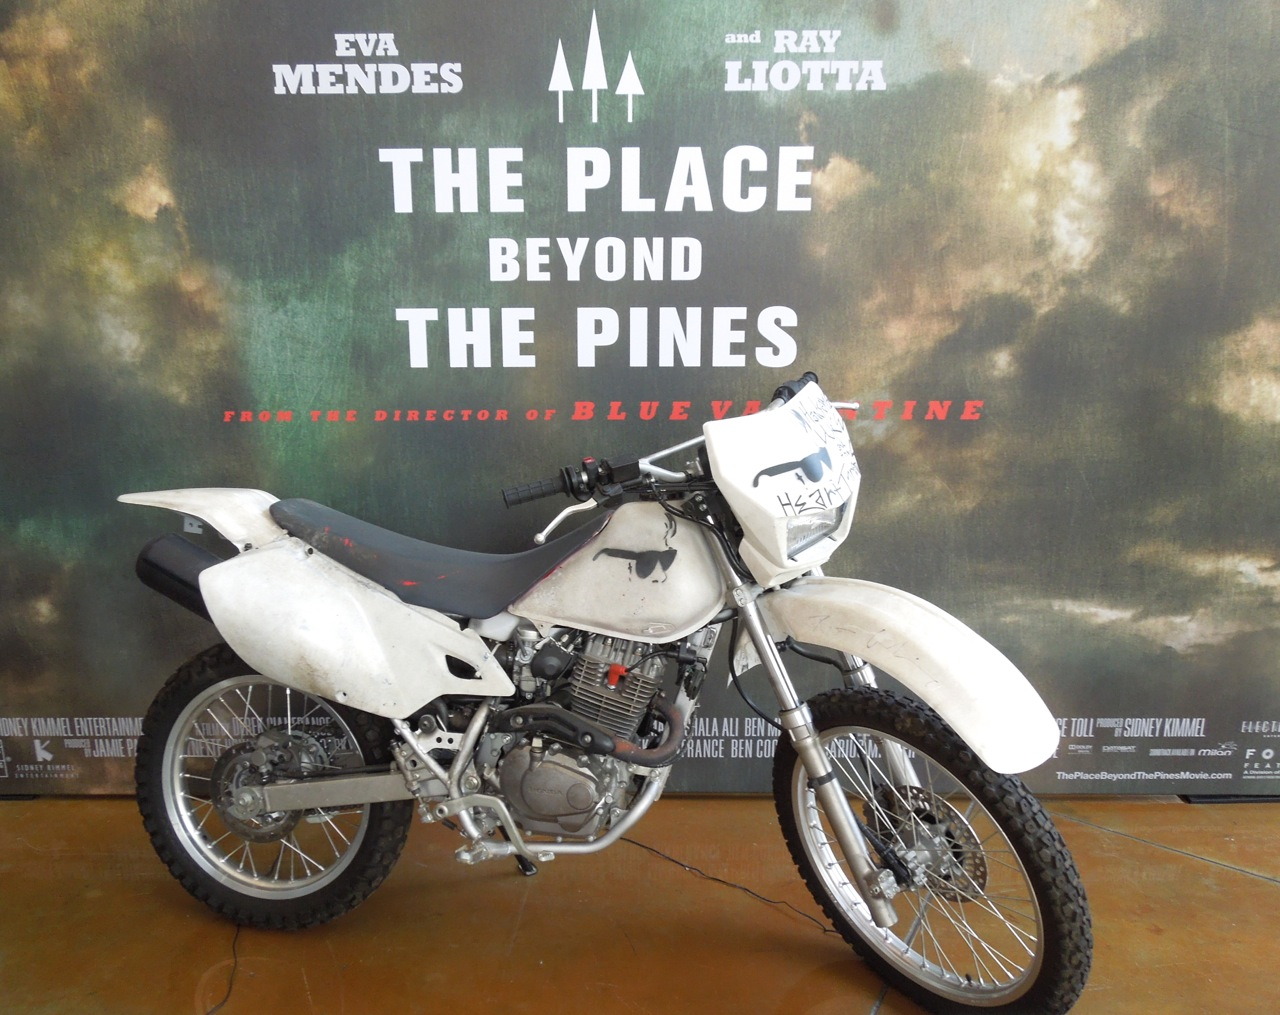 Honda Motorcycle Used In The Place Beyond The Pines